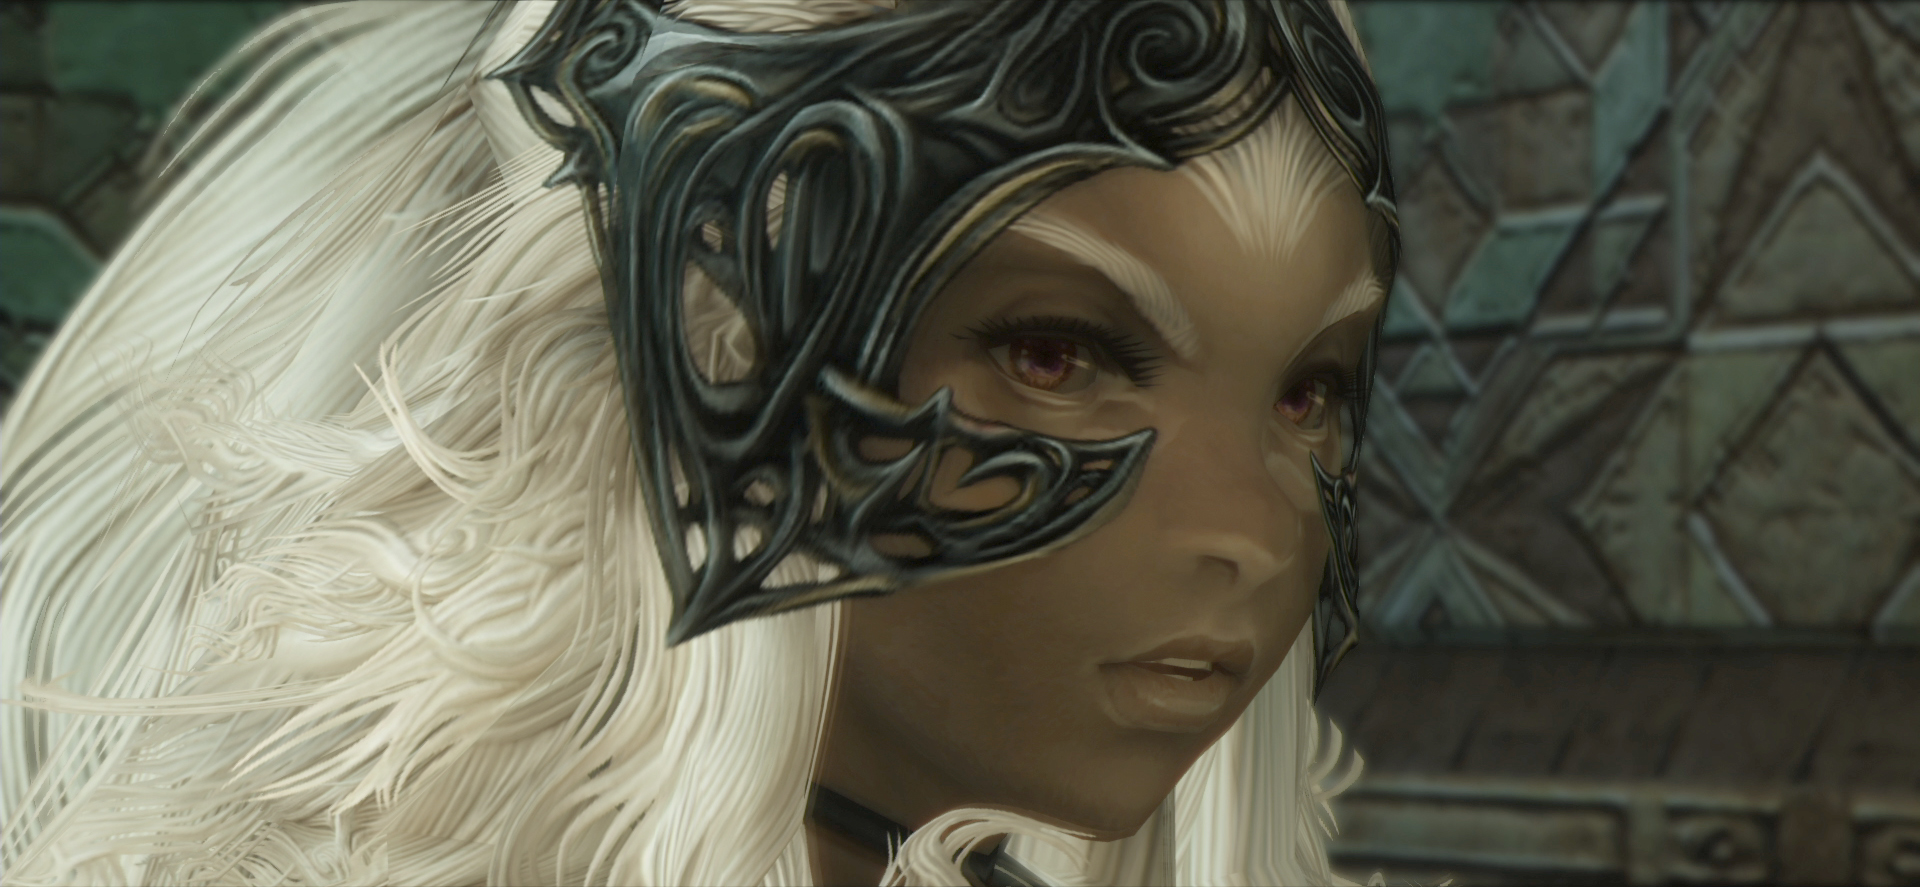 Get a better look at Final Fantasy XII: The Zodiac Age with these